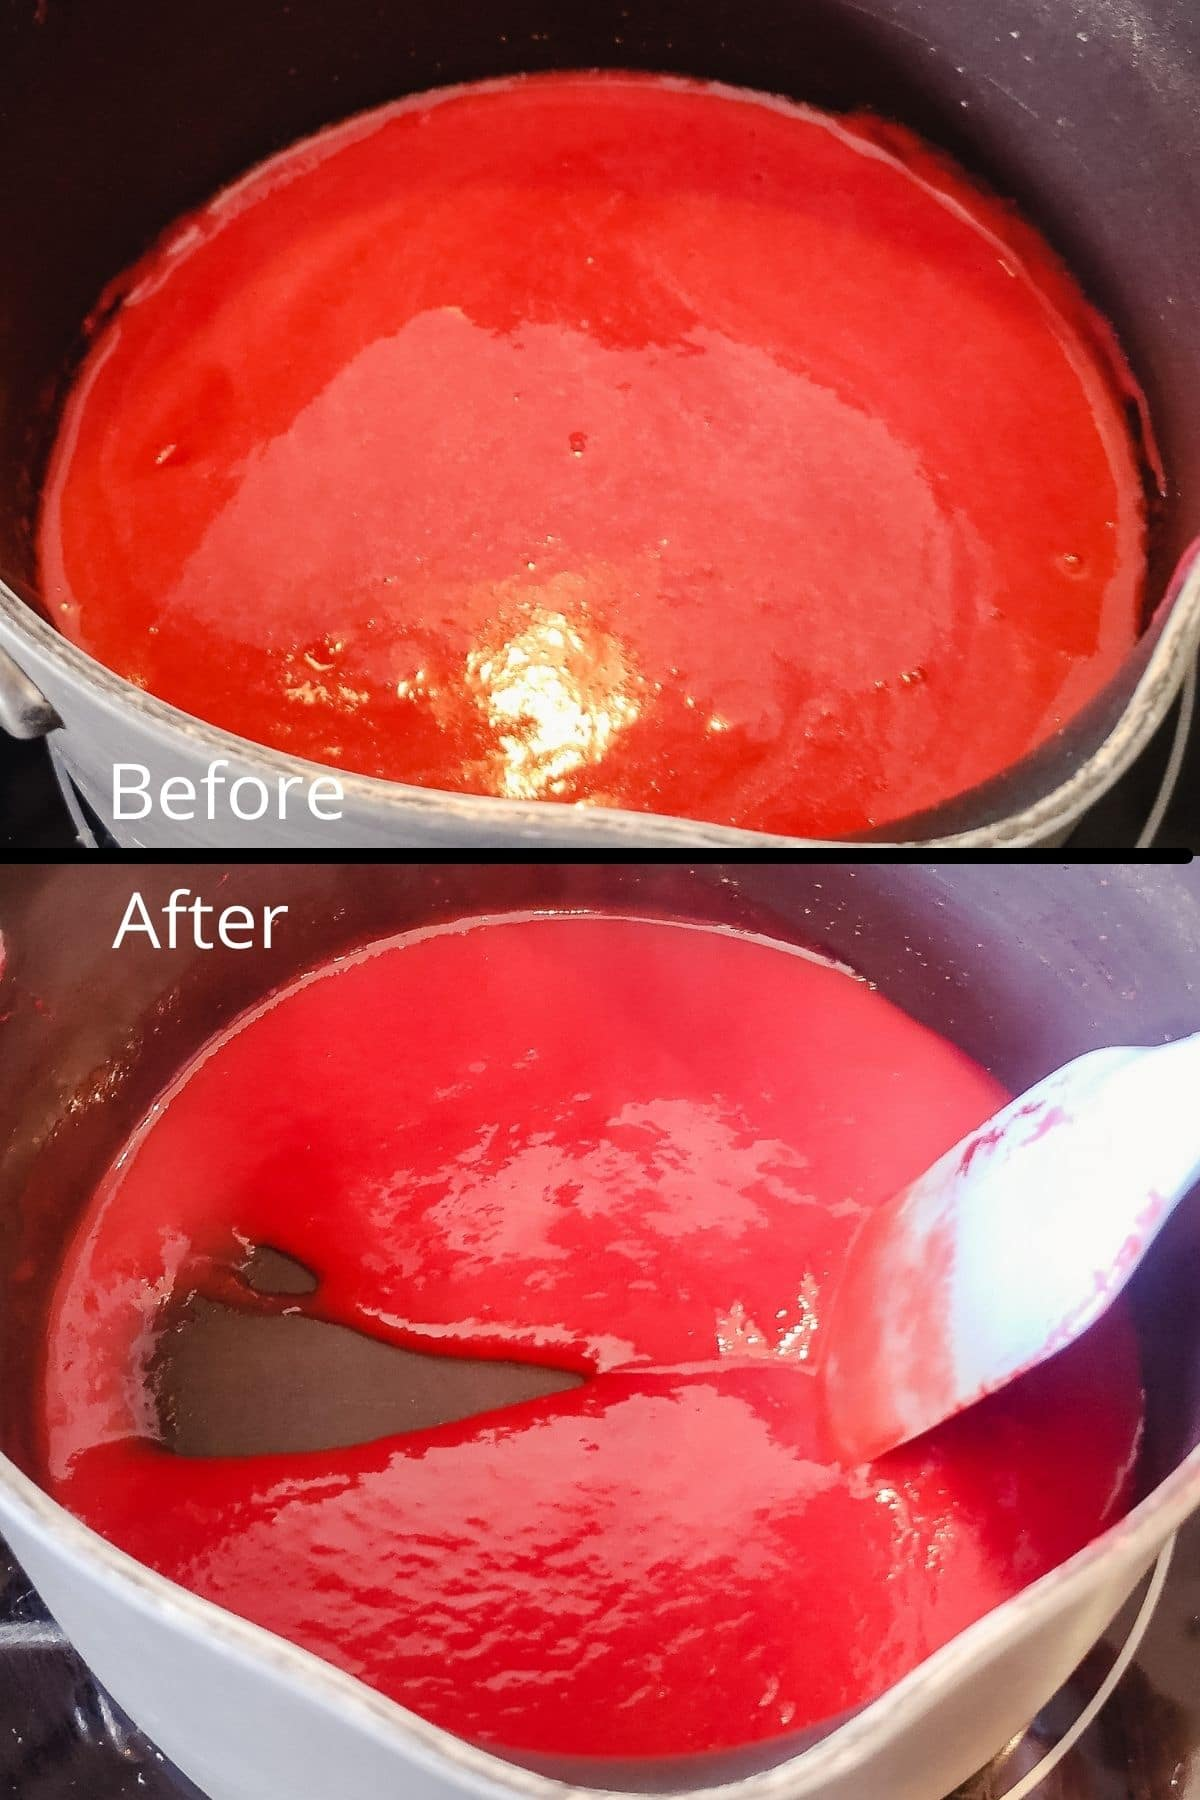 Raspberry puree before and after heating to raspberry reduction